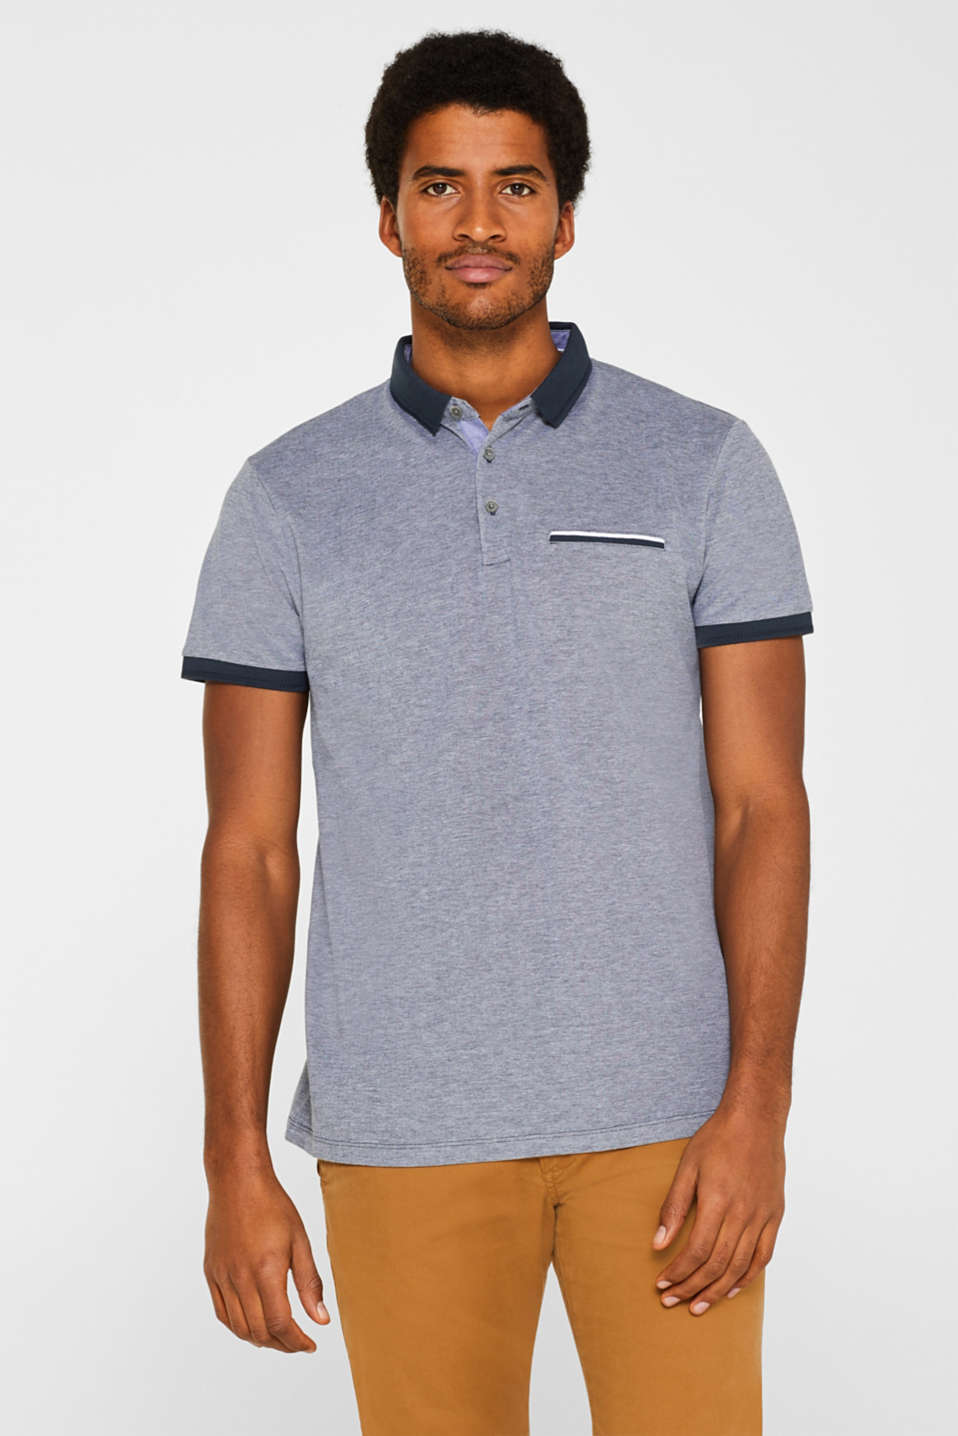 Esprit - Oxford piqué polo shirt in 100% cotton